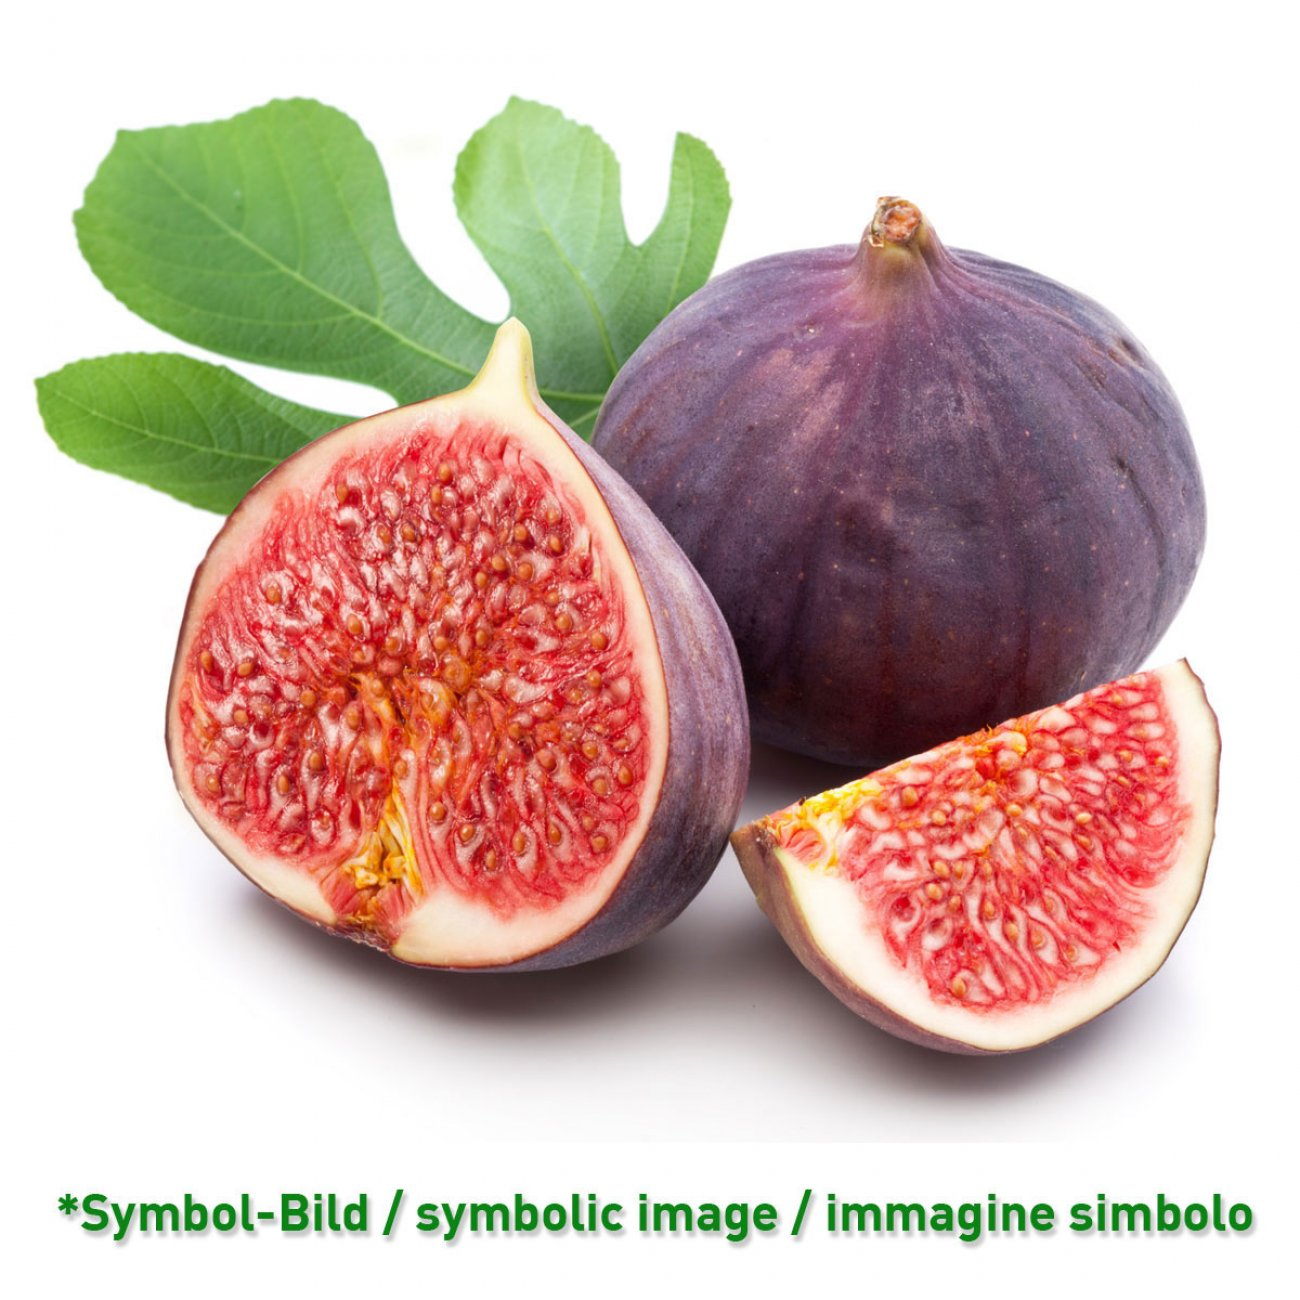 fig / fico - tin 3,25 kg - Super Top Variegates